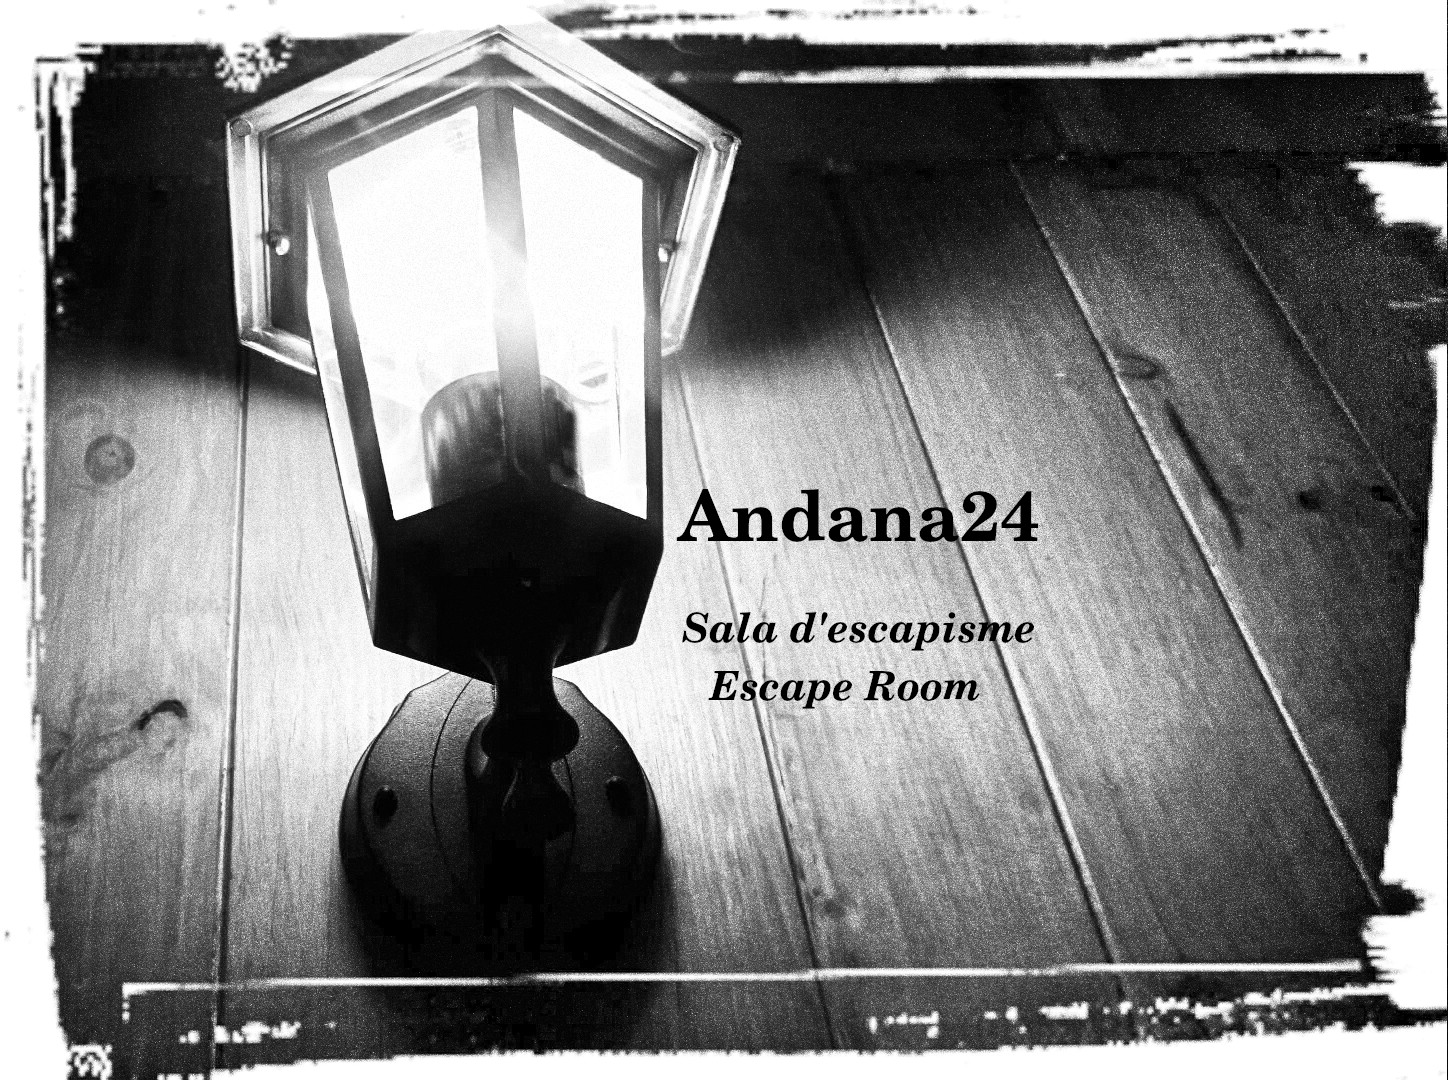 Andana 24 Escape Room